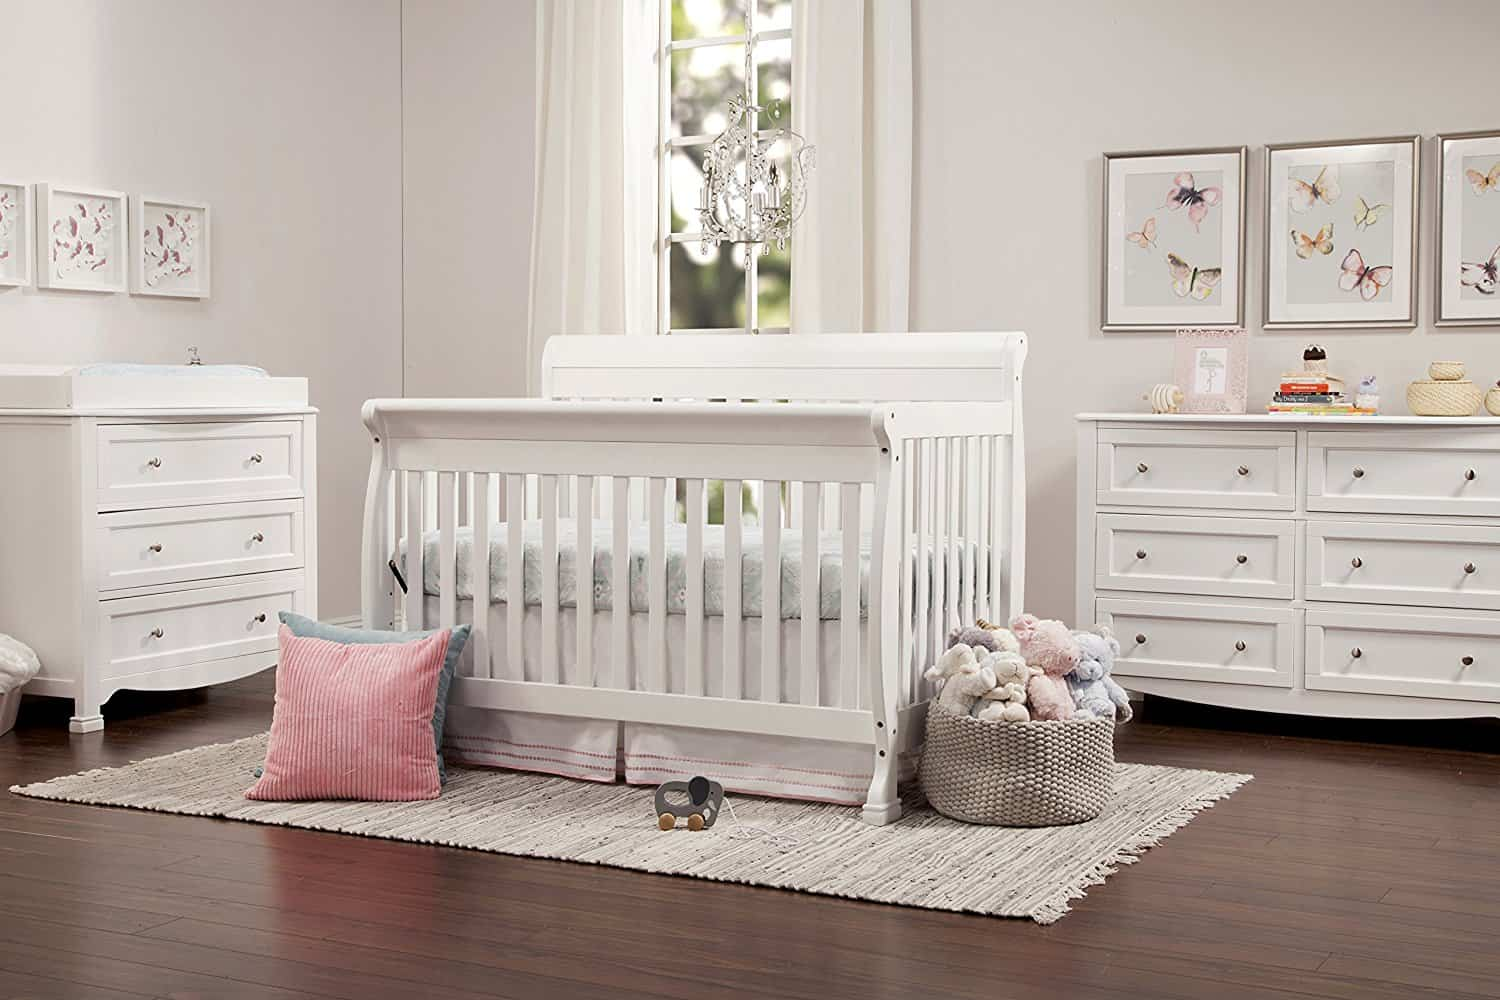 Best Baby Crib 2017 DaVinci Kalani crib in white